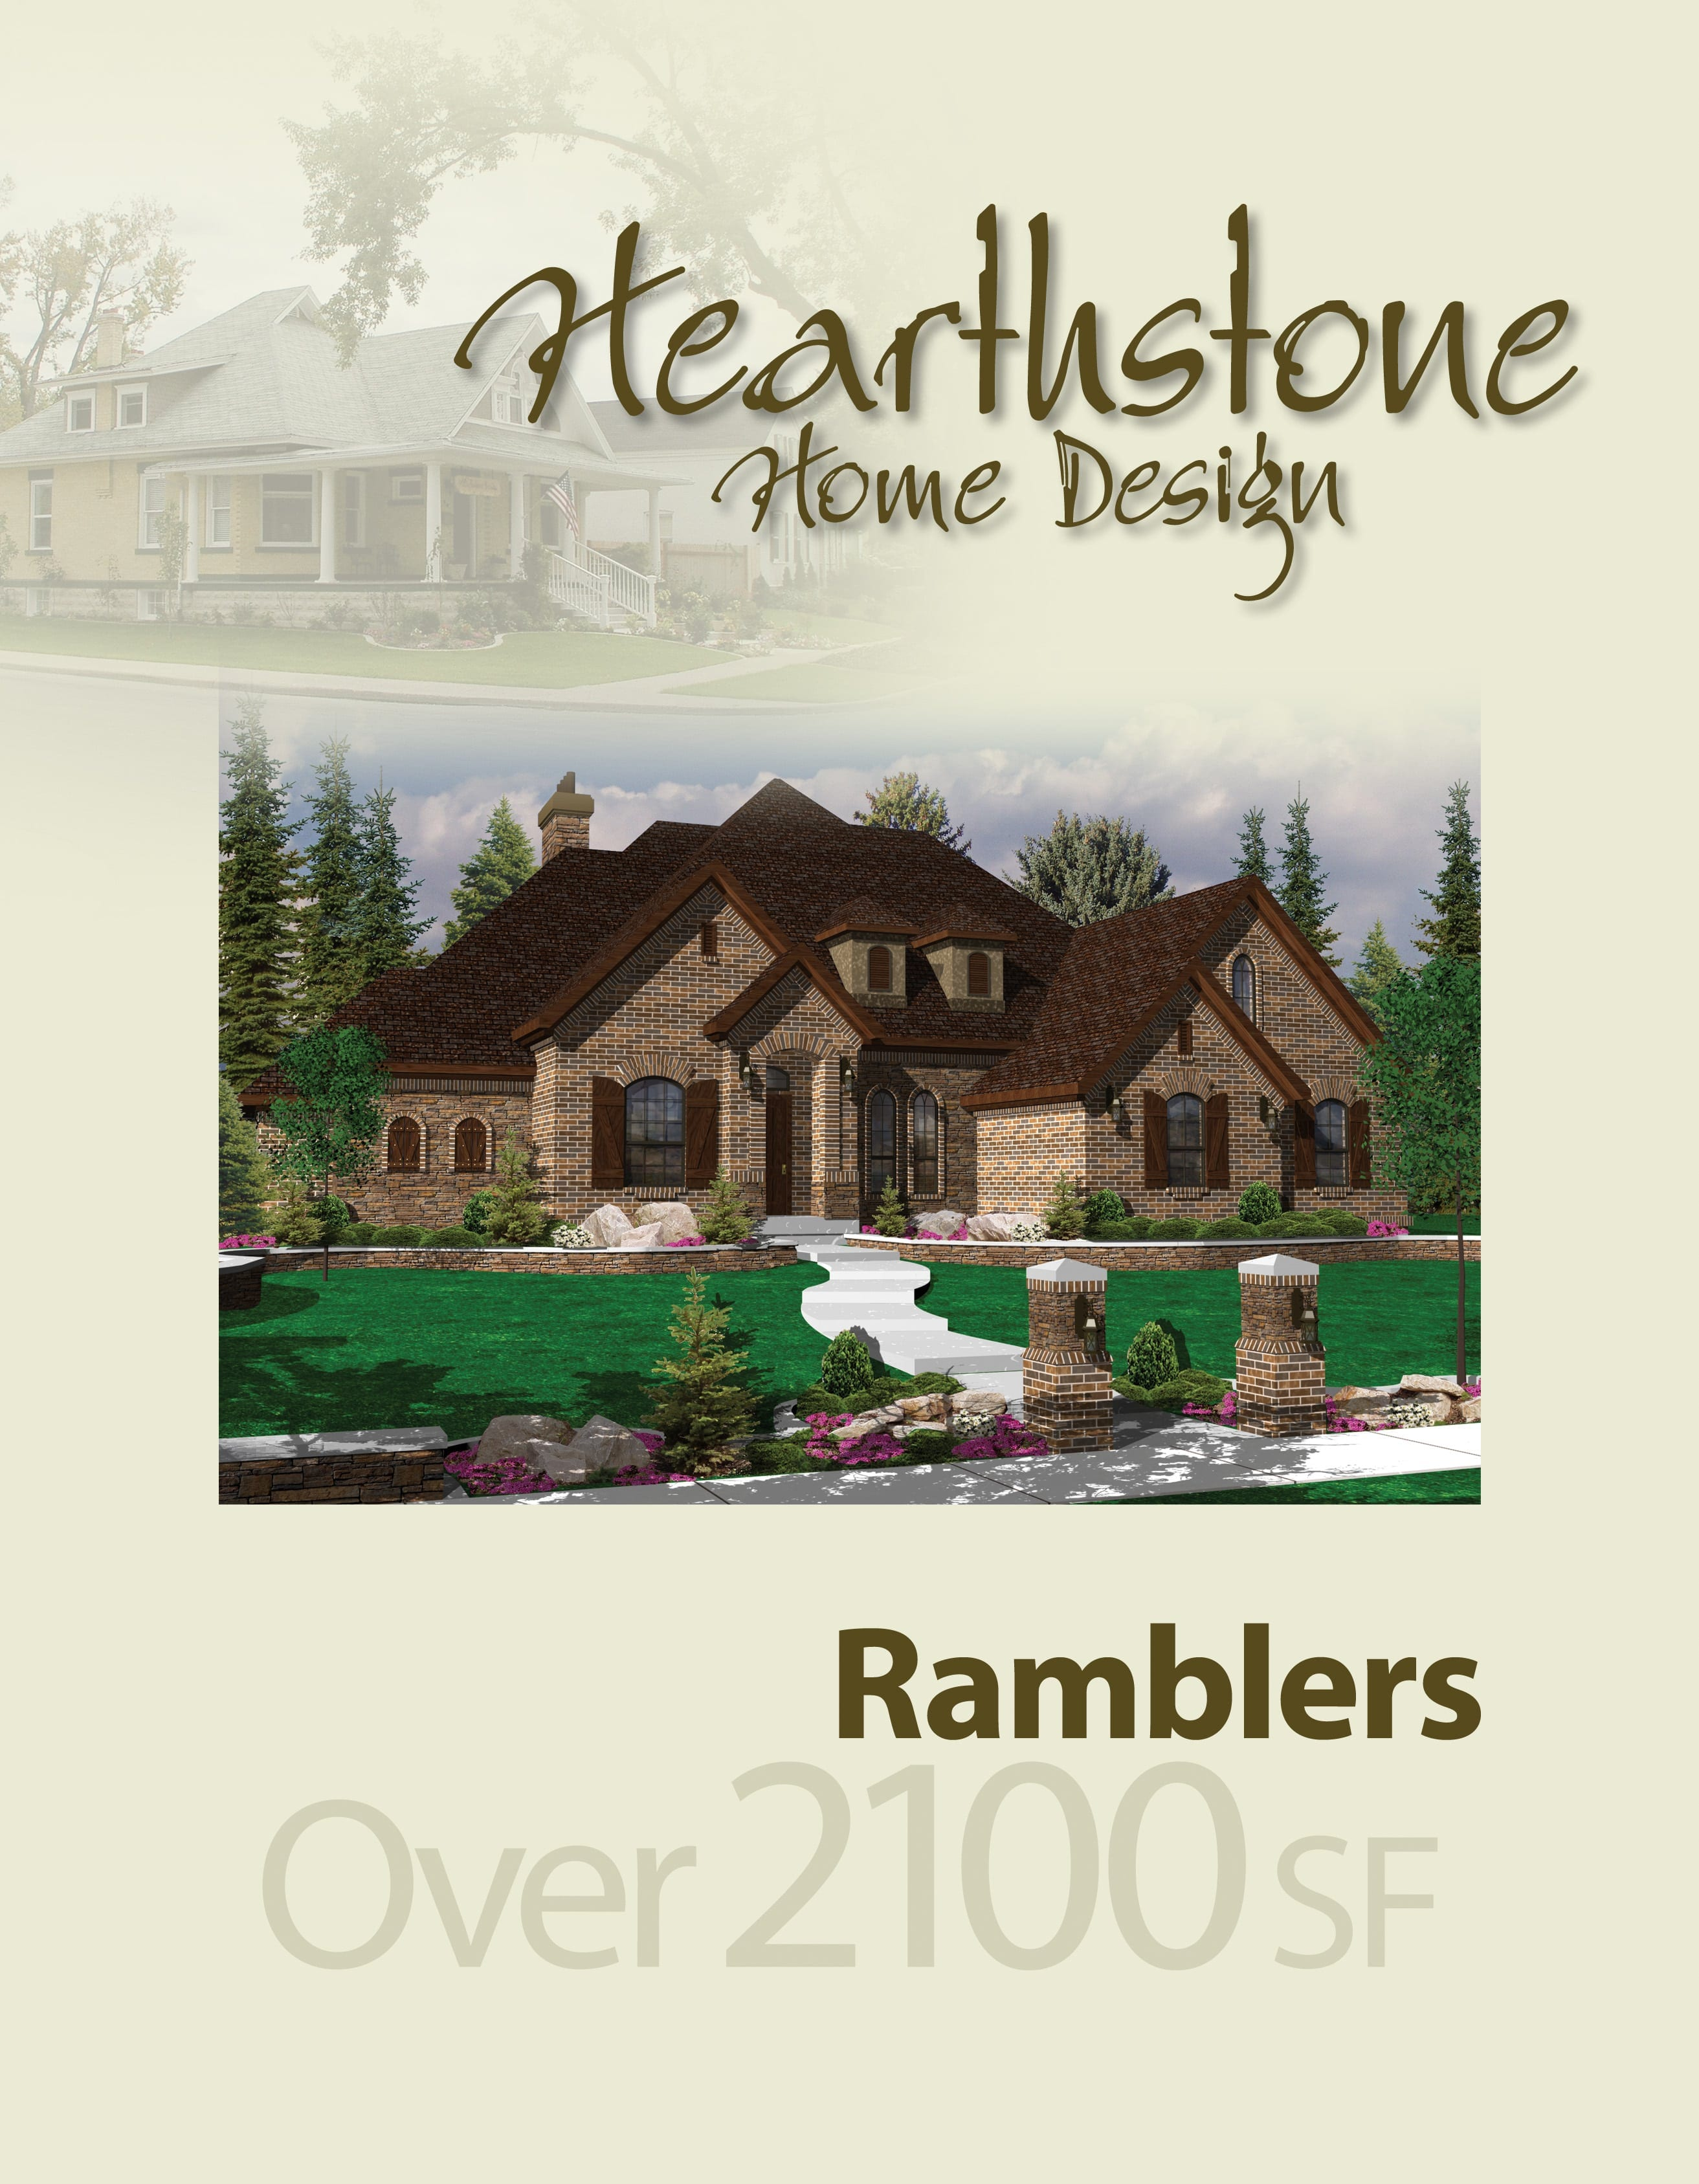 Ramblers Over 2100 S.F. on 2500 square foot home plans, 3000 foot house plans, green modular home plans, 500 ft. house plans, 1080 sq ft. house plans, 1800 ft. house plans, 625 square foot home plans, 1000 ft. house plans, 4000 square foot home plans, 3000 sf house plans, 4000 ft floor plans, 3000 sq ft floor plans,